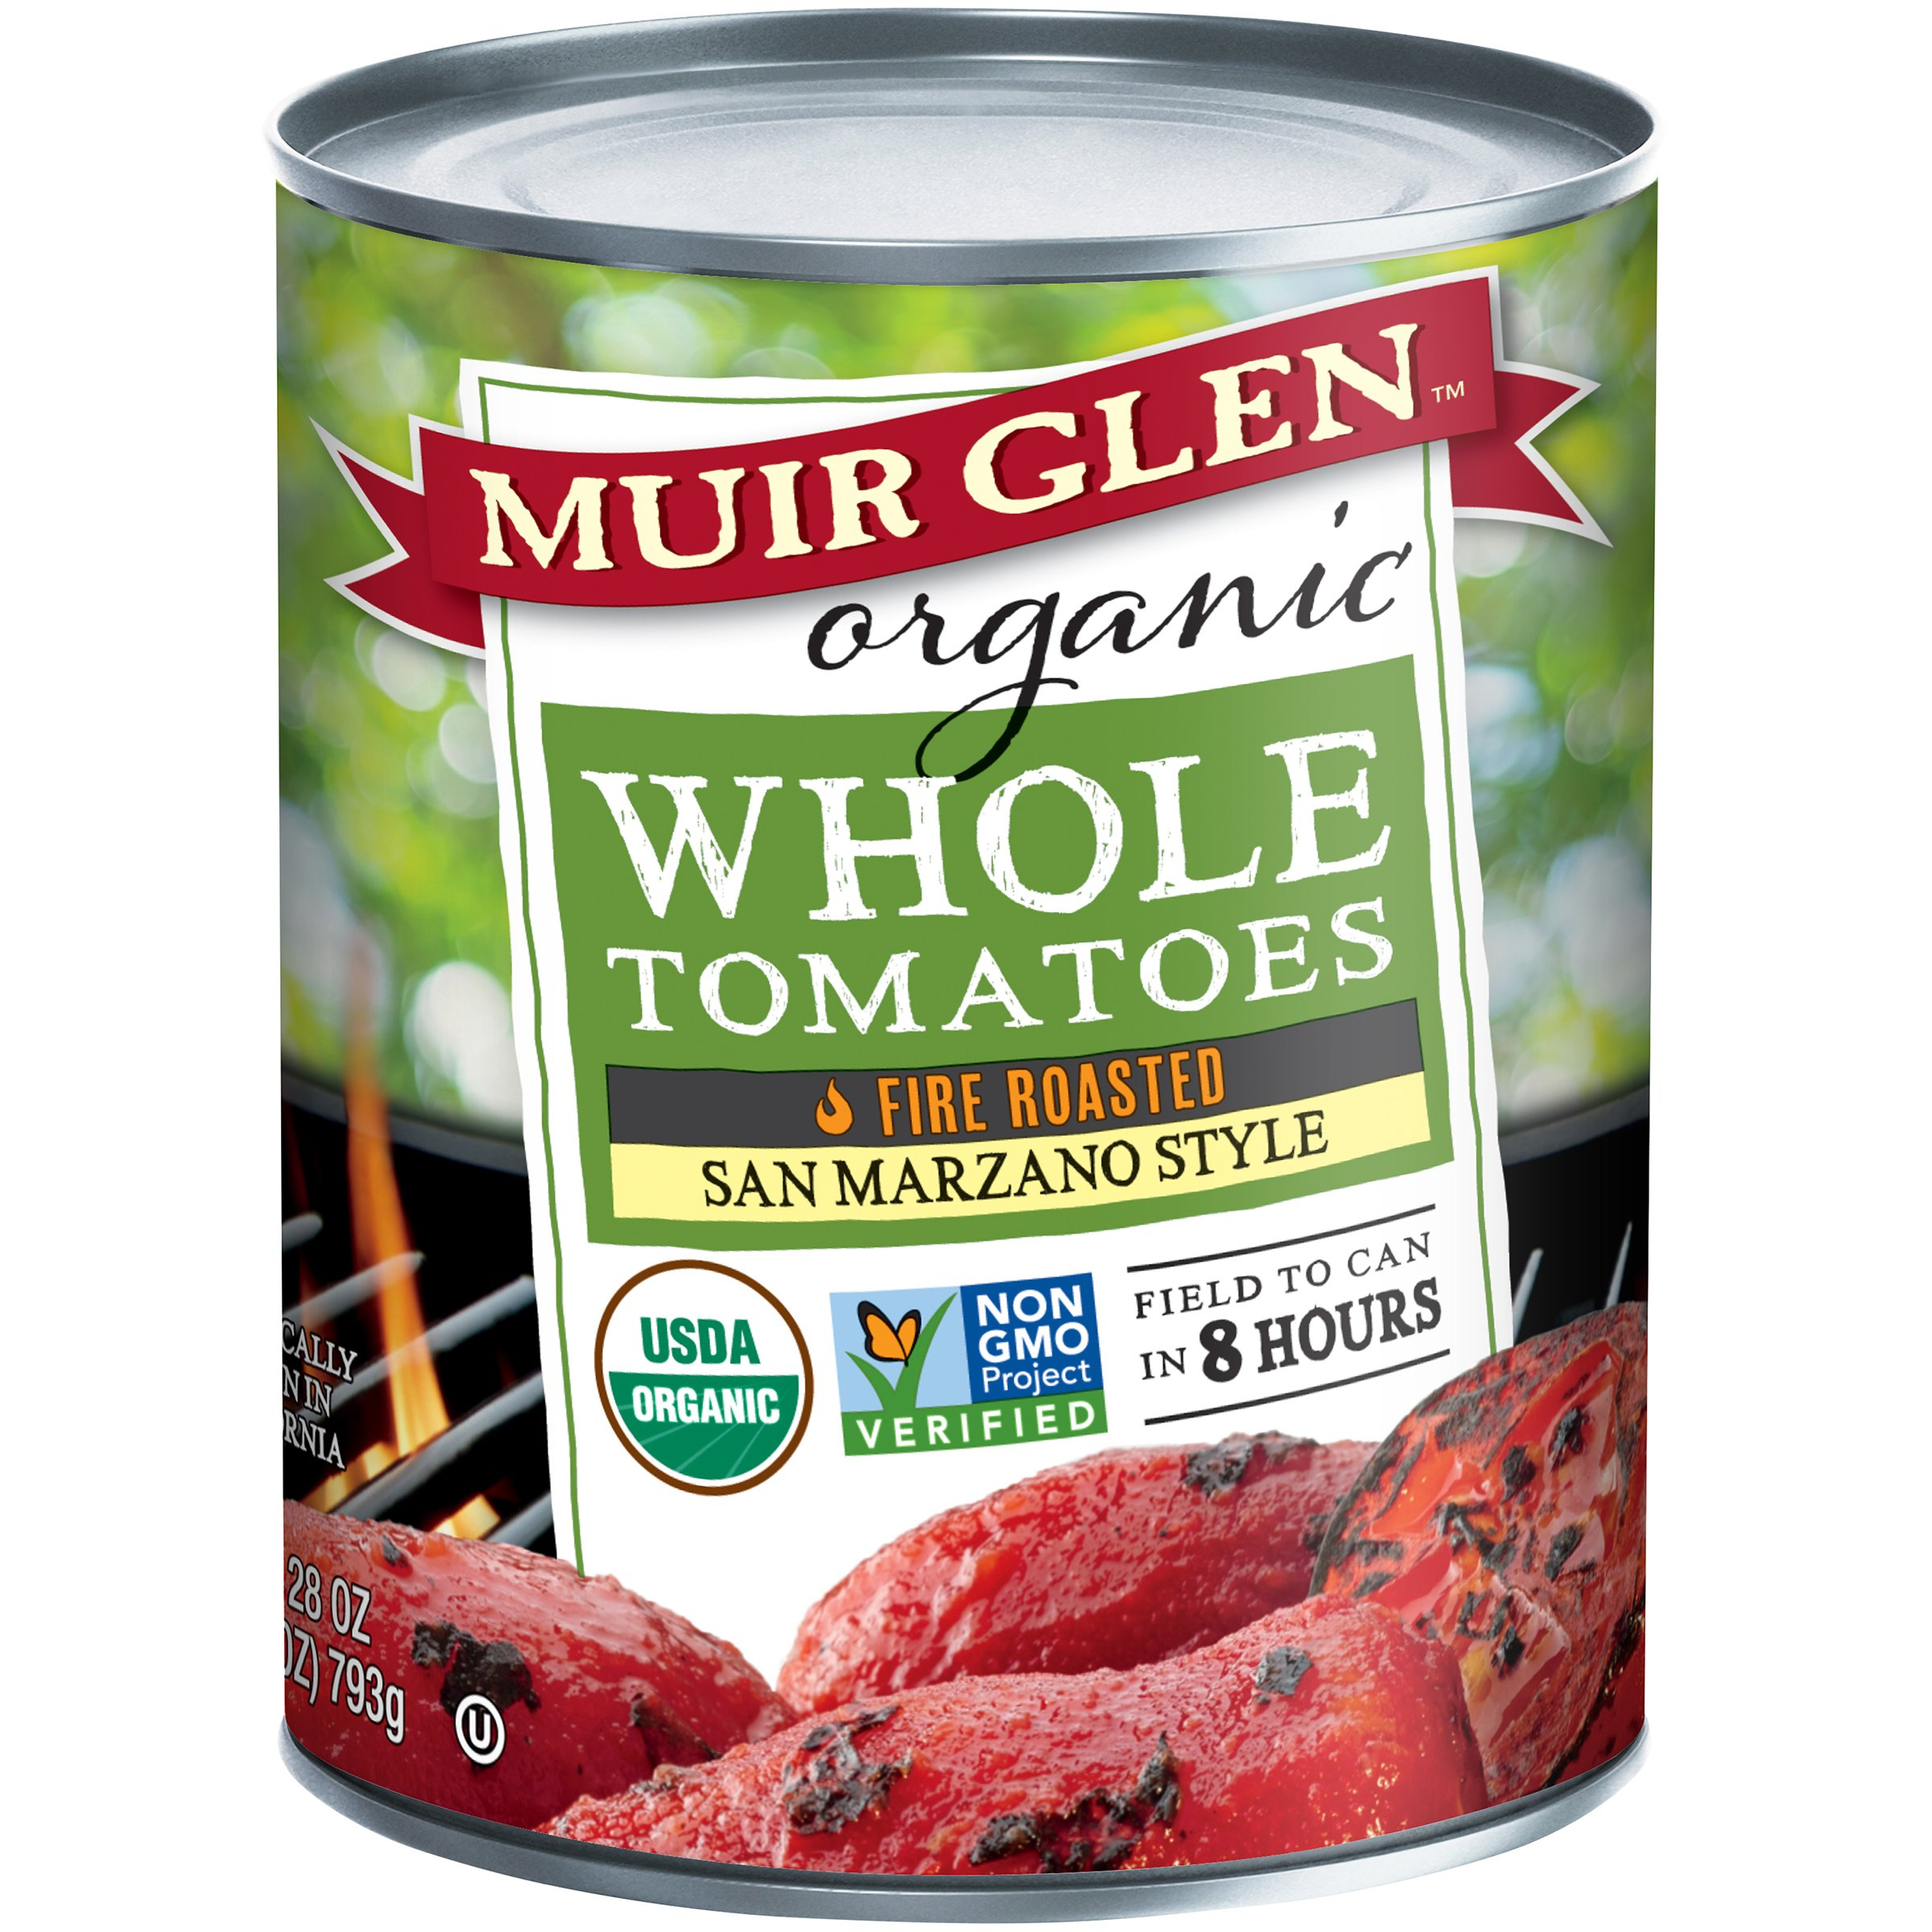 Muir Glen Organic San Marzano Style Fire Roasted Whole Tomatoes, 28 Ounce - 6 per case.